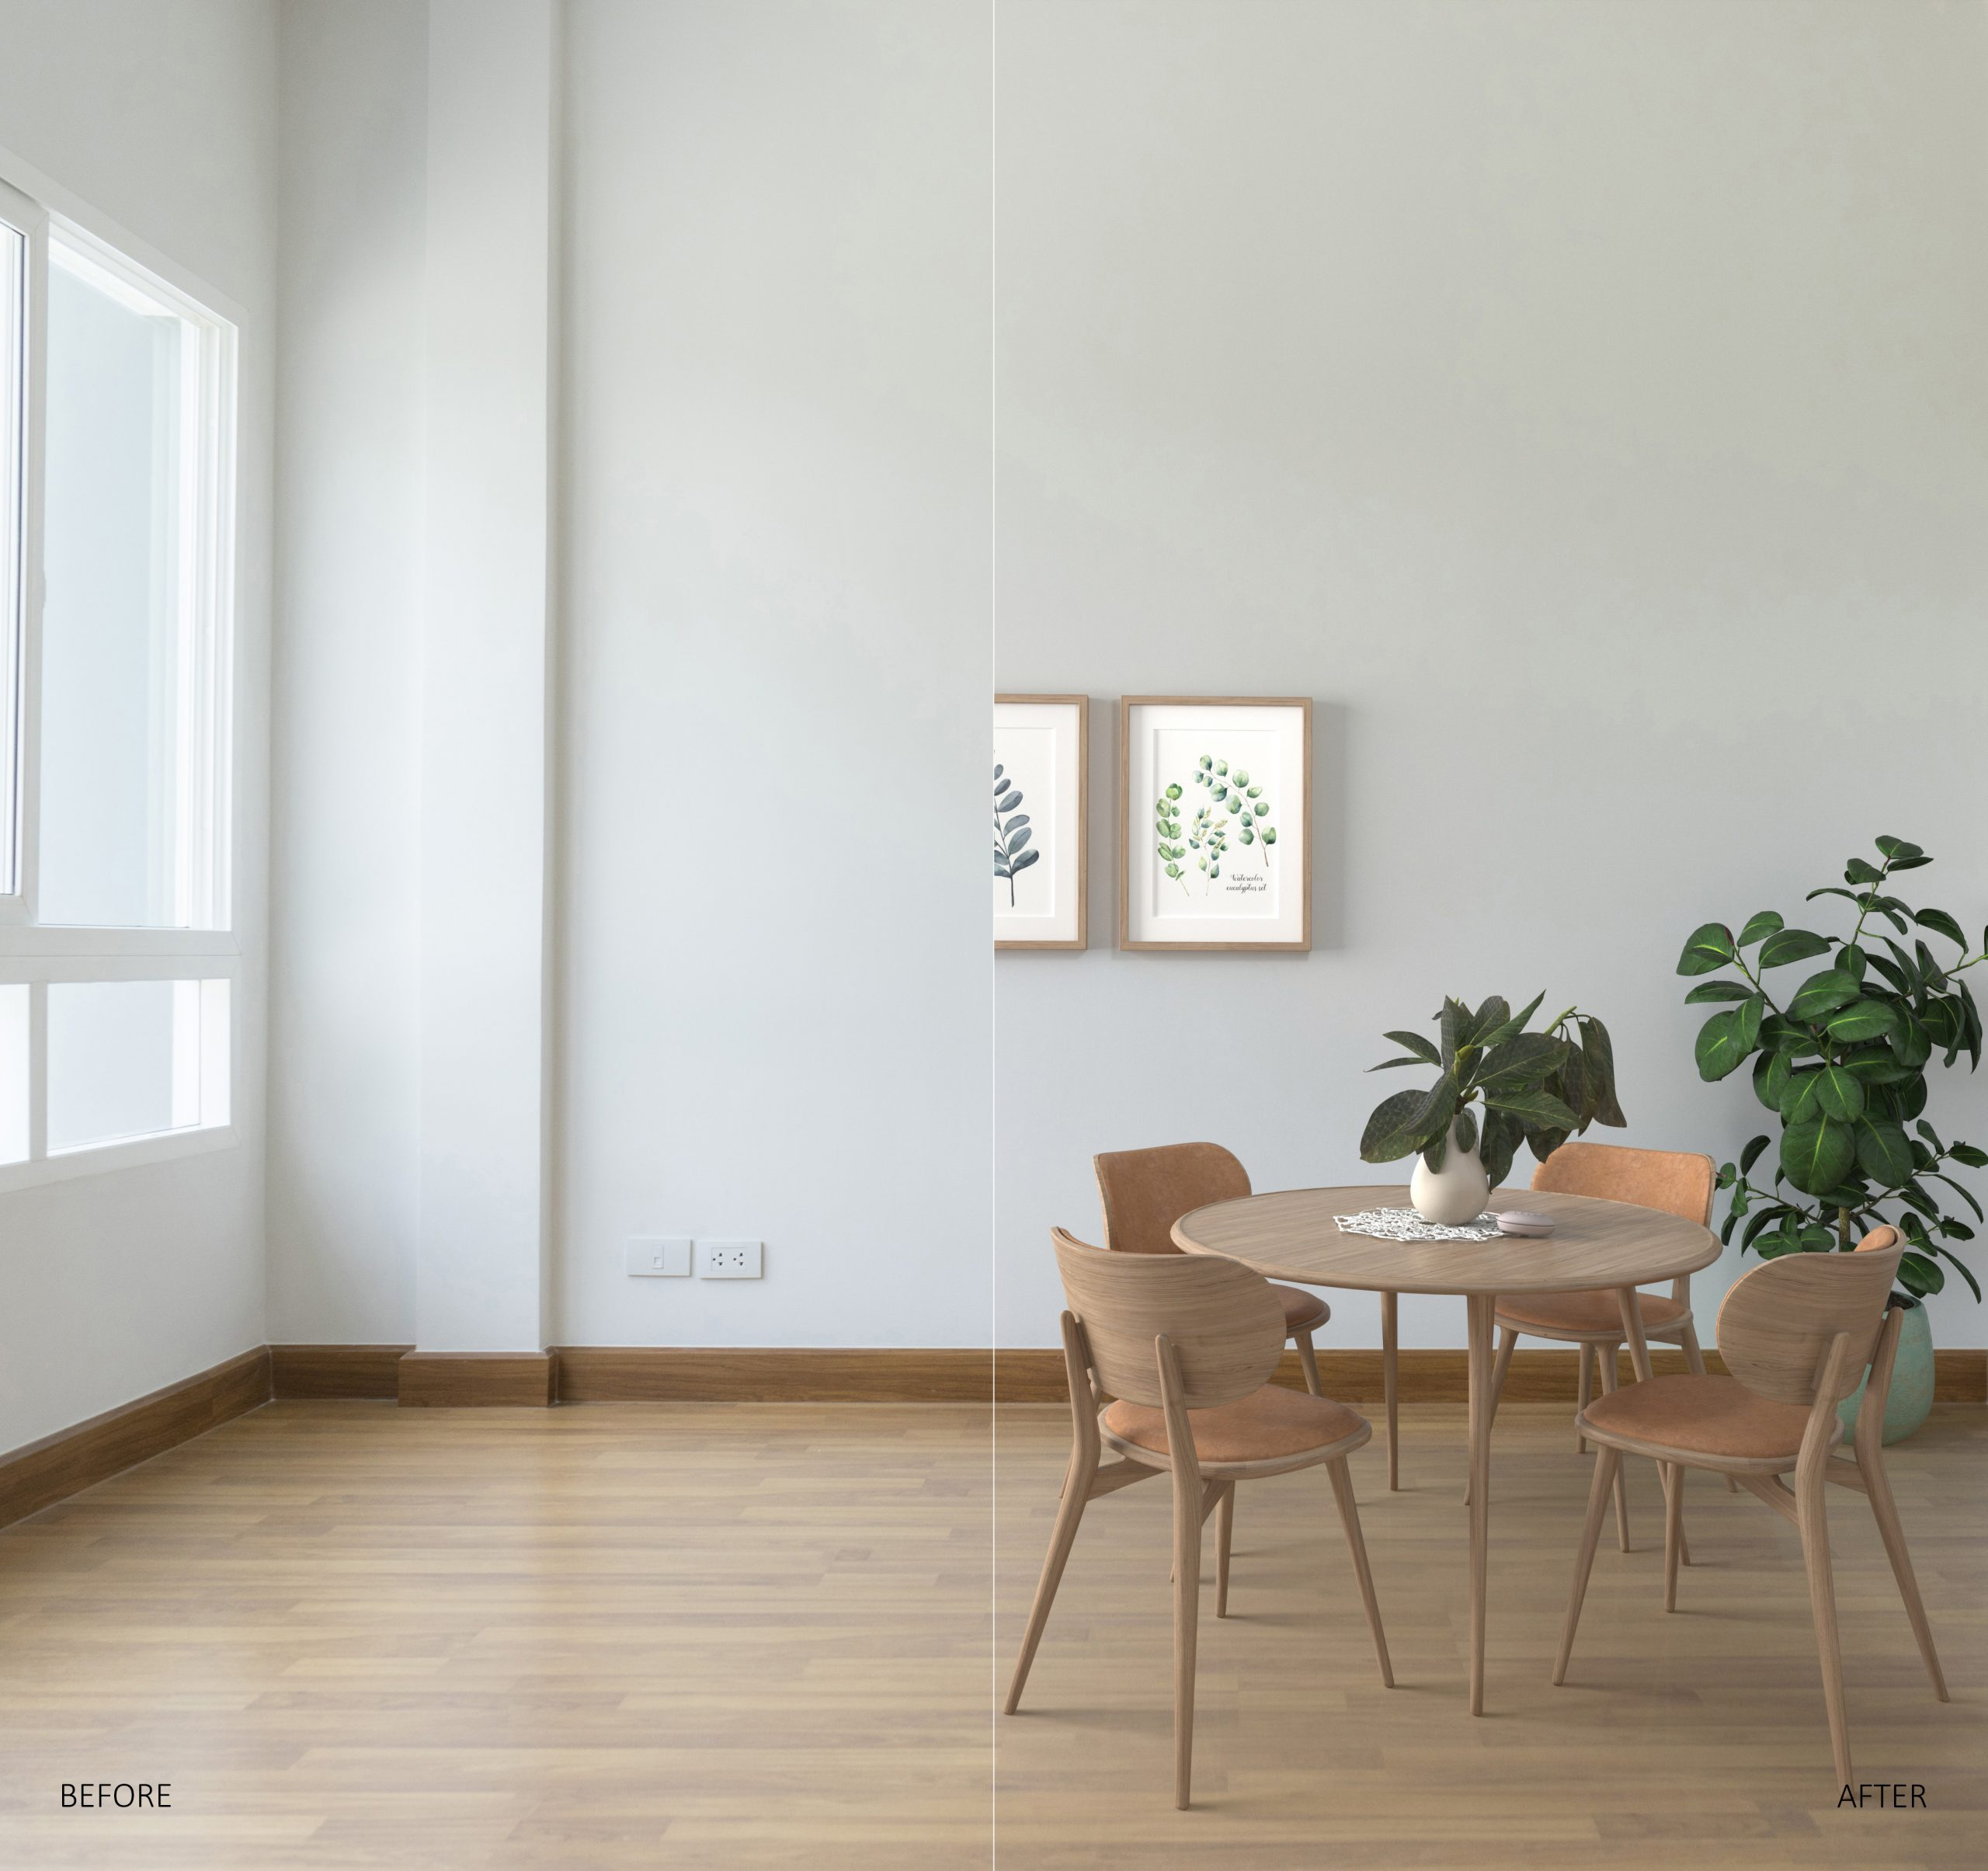 YOU SHOOT WE EDIT - VIRTUAL STAGING